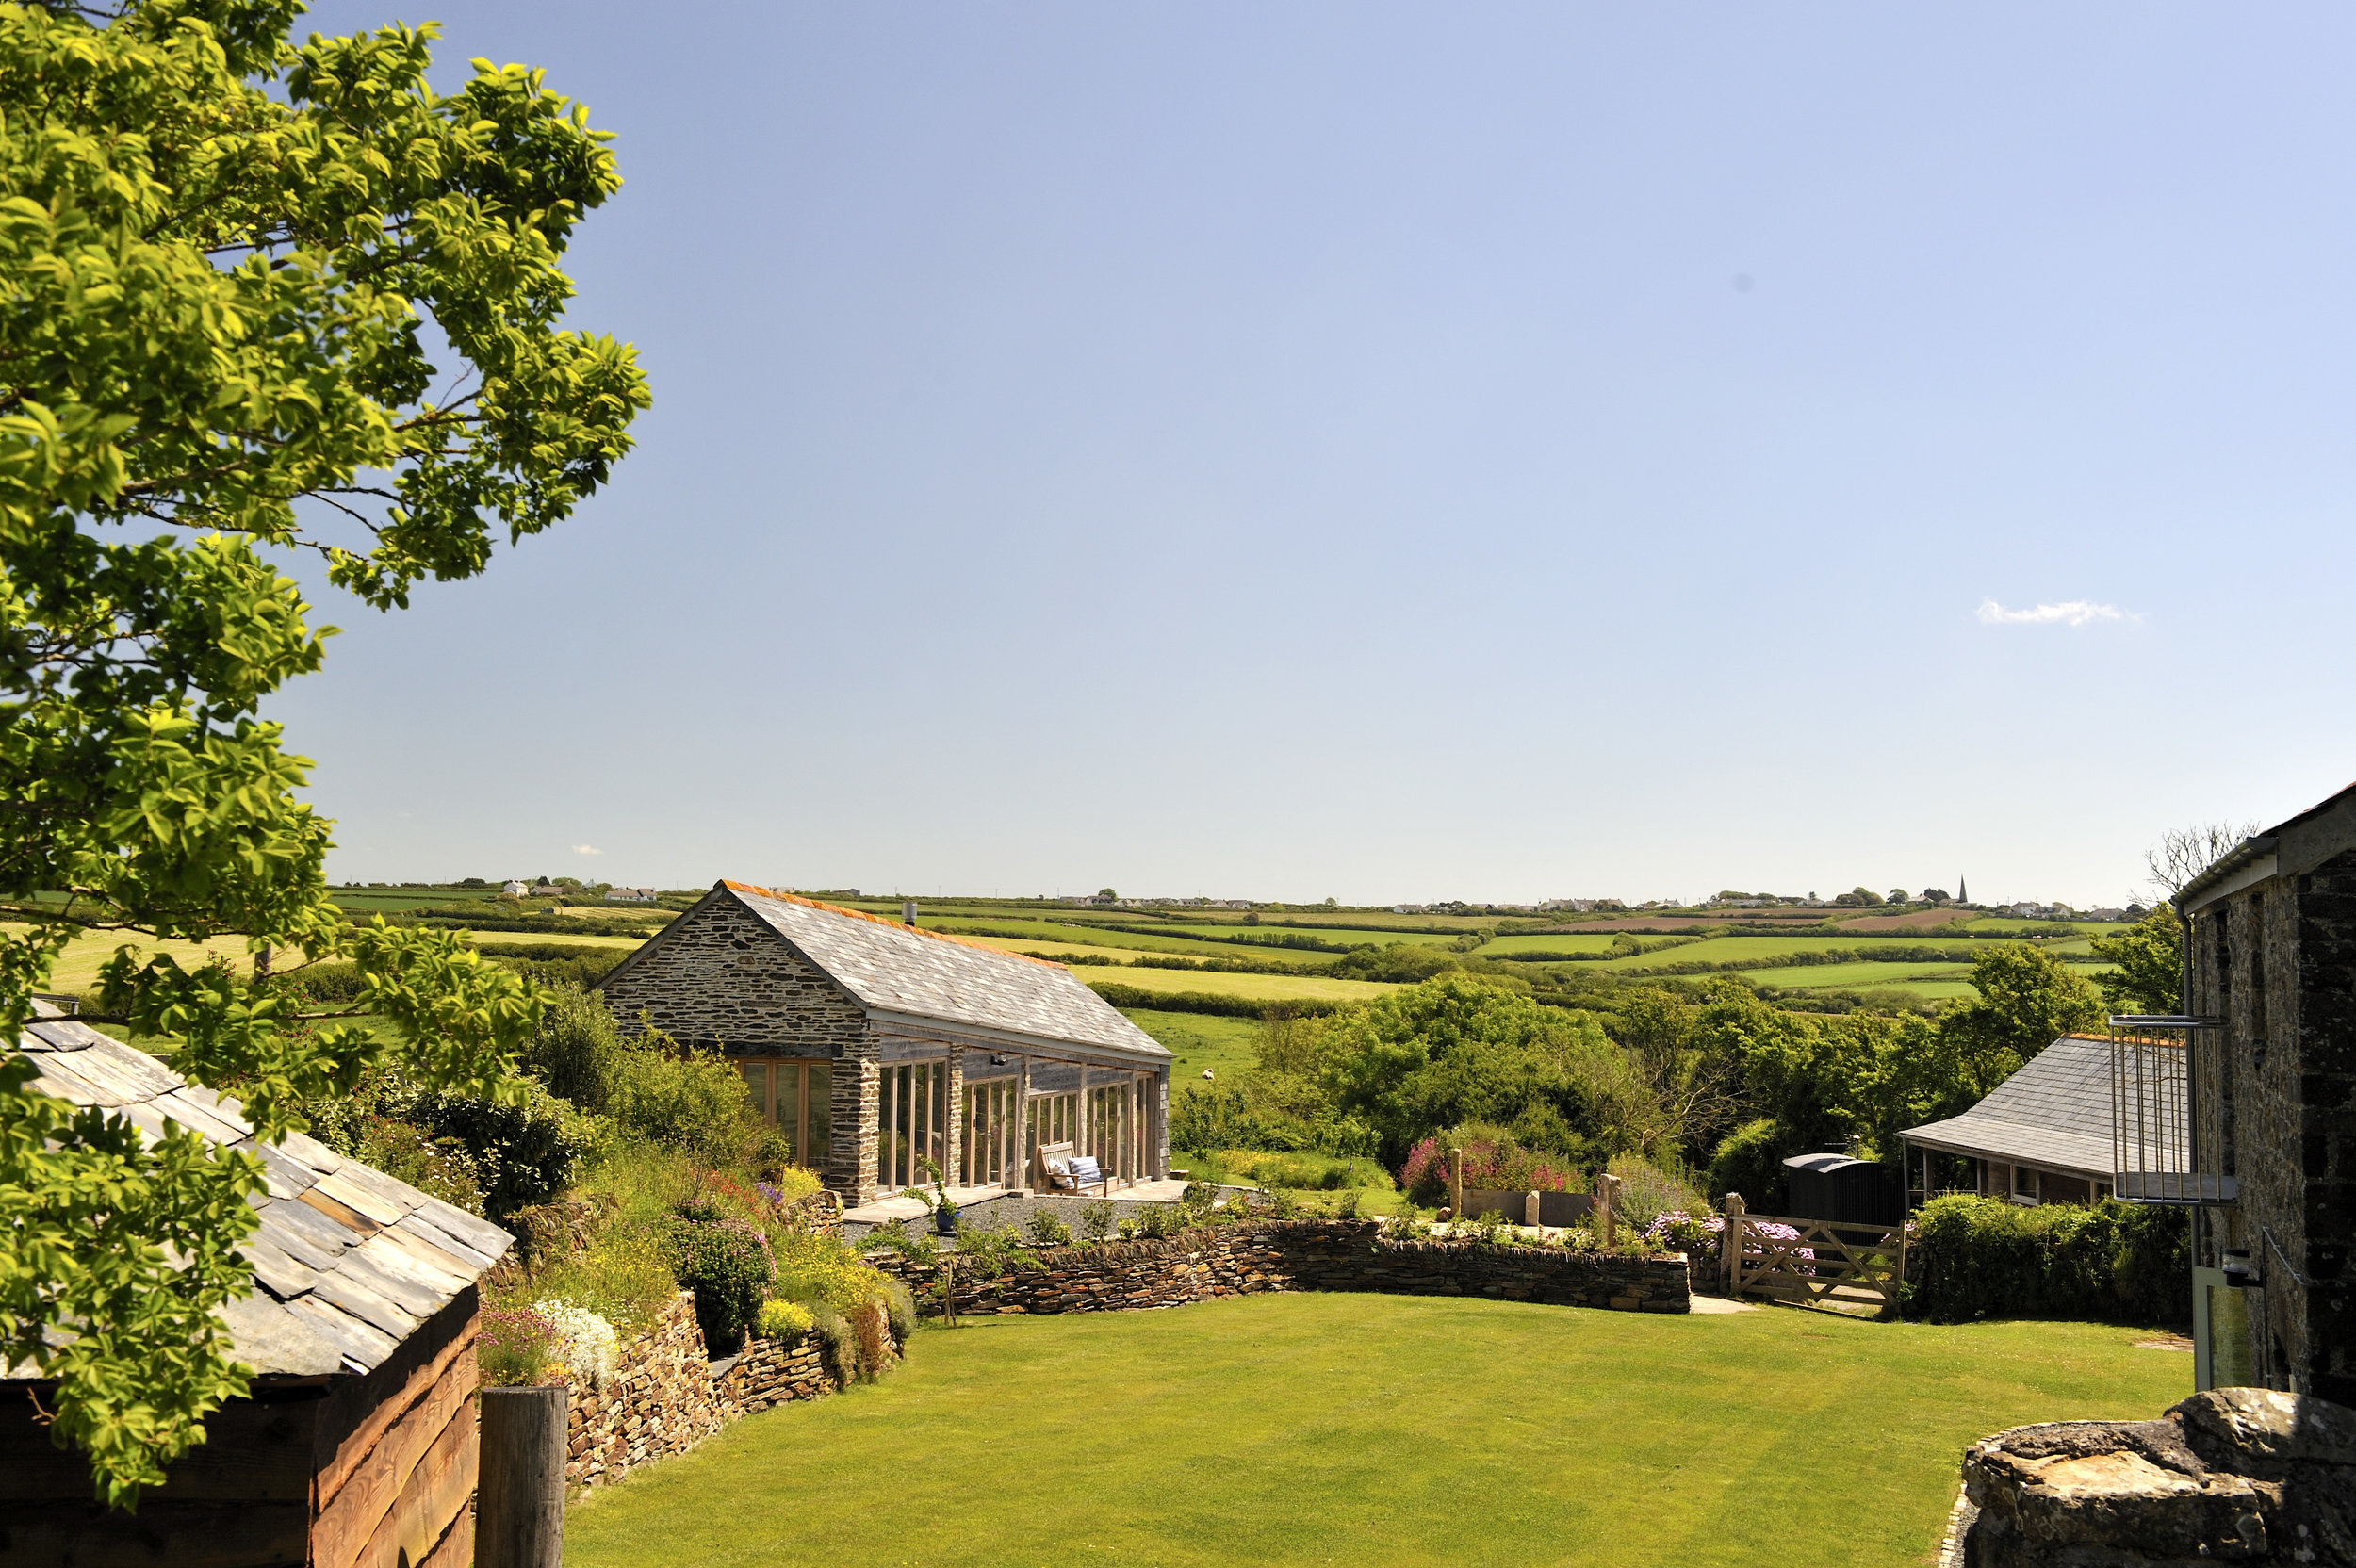 THE LINHAY - Open plan converted cart shed, can be taken with Mill - Sleeps 2